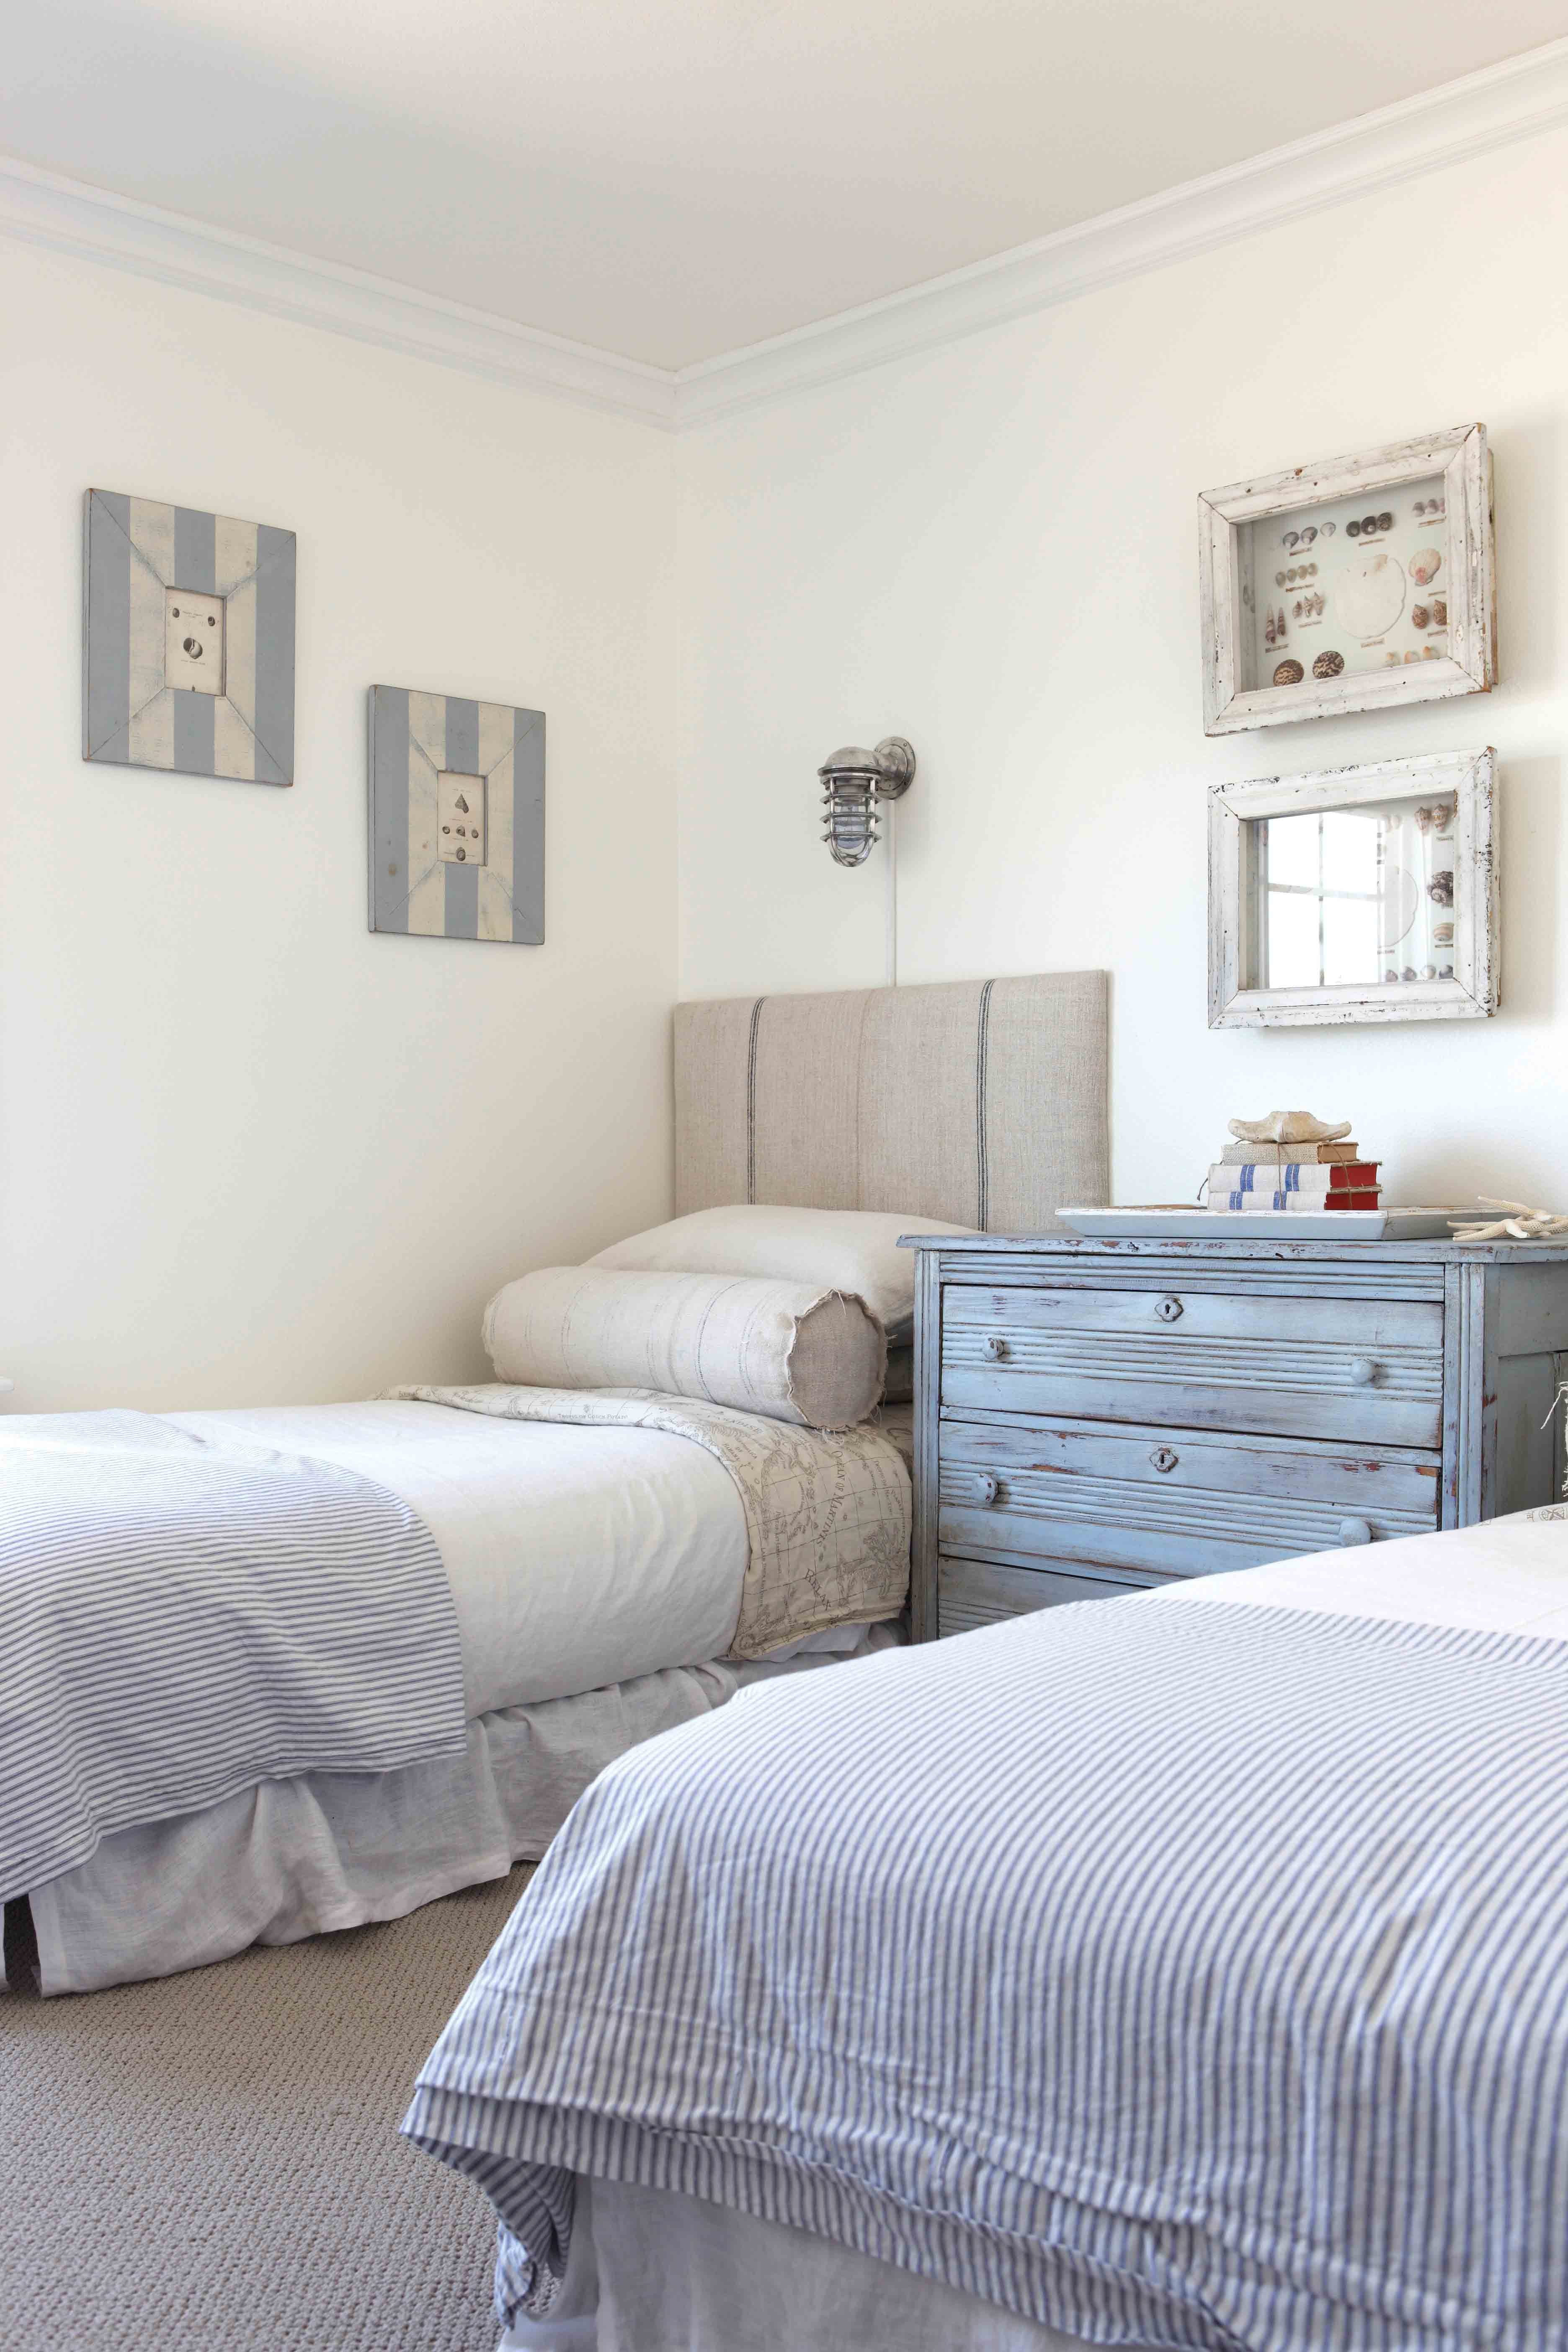 Twin Beds Cottage Style Decorating Renovating And Entertaining Ideas For Indoors And Out